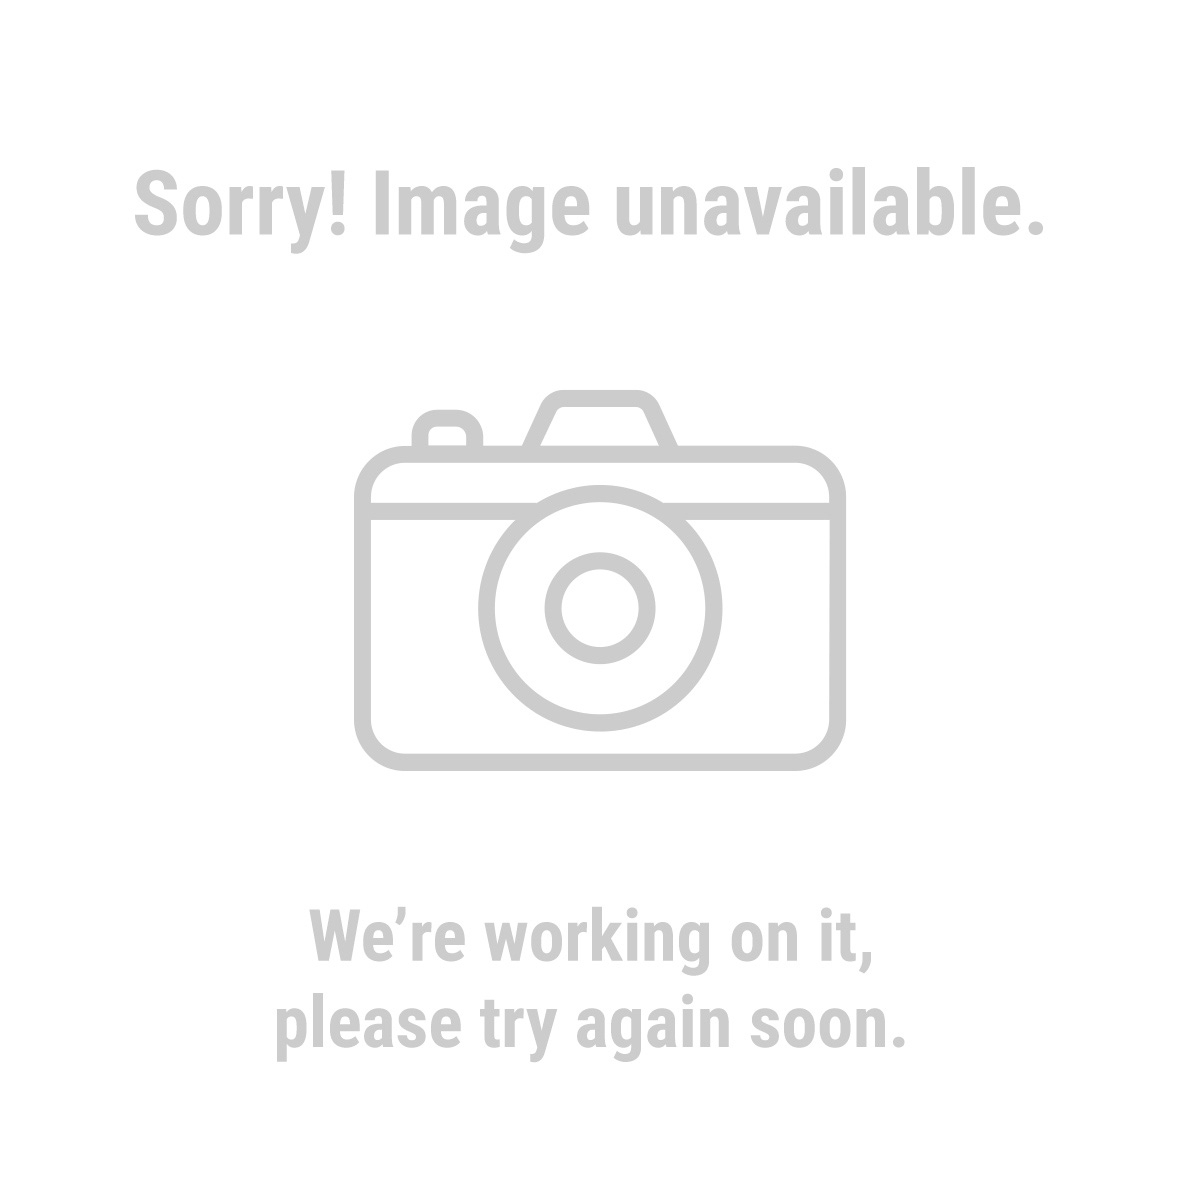 Warrior® 69970 7 Piece 1200 Grit Silicon Carbide Sanding Sheets